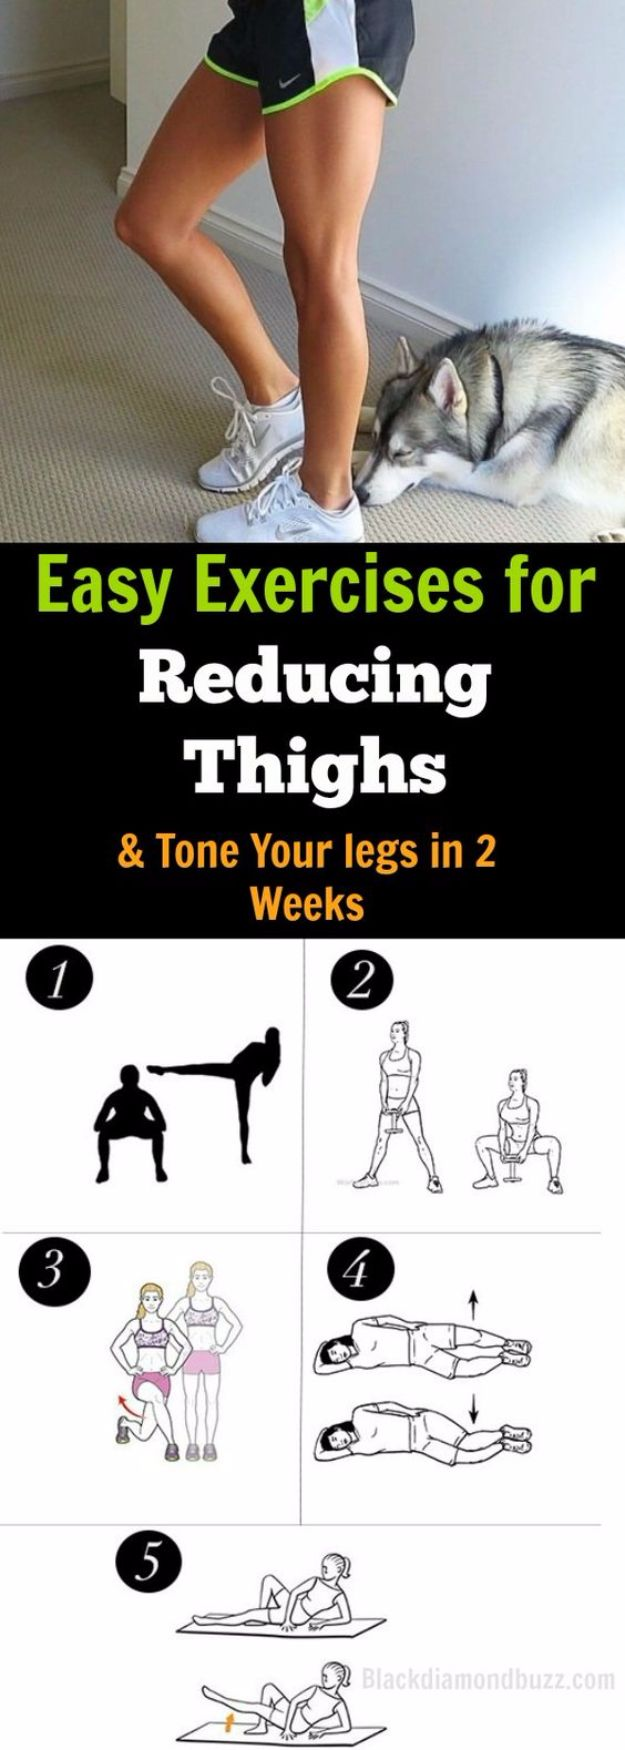 Best Exercises for 2018 - Lose Upper Thigh Fat Fast in 7 Days - Easy At Home Exercises - Quick Exercise Tutorials to Try at Lunch Break - Ways To Get In Shape - Butt, Abs, Arms, Legs, Thighs, Tummy http://diyjoy.com/best-at-home-exercises-2018